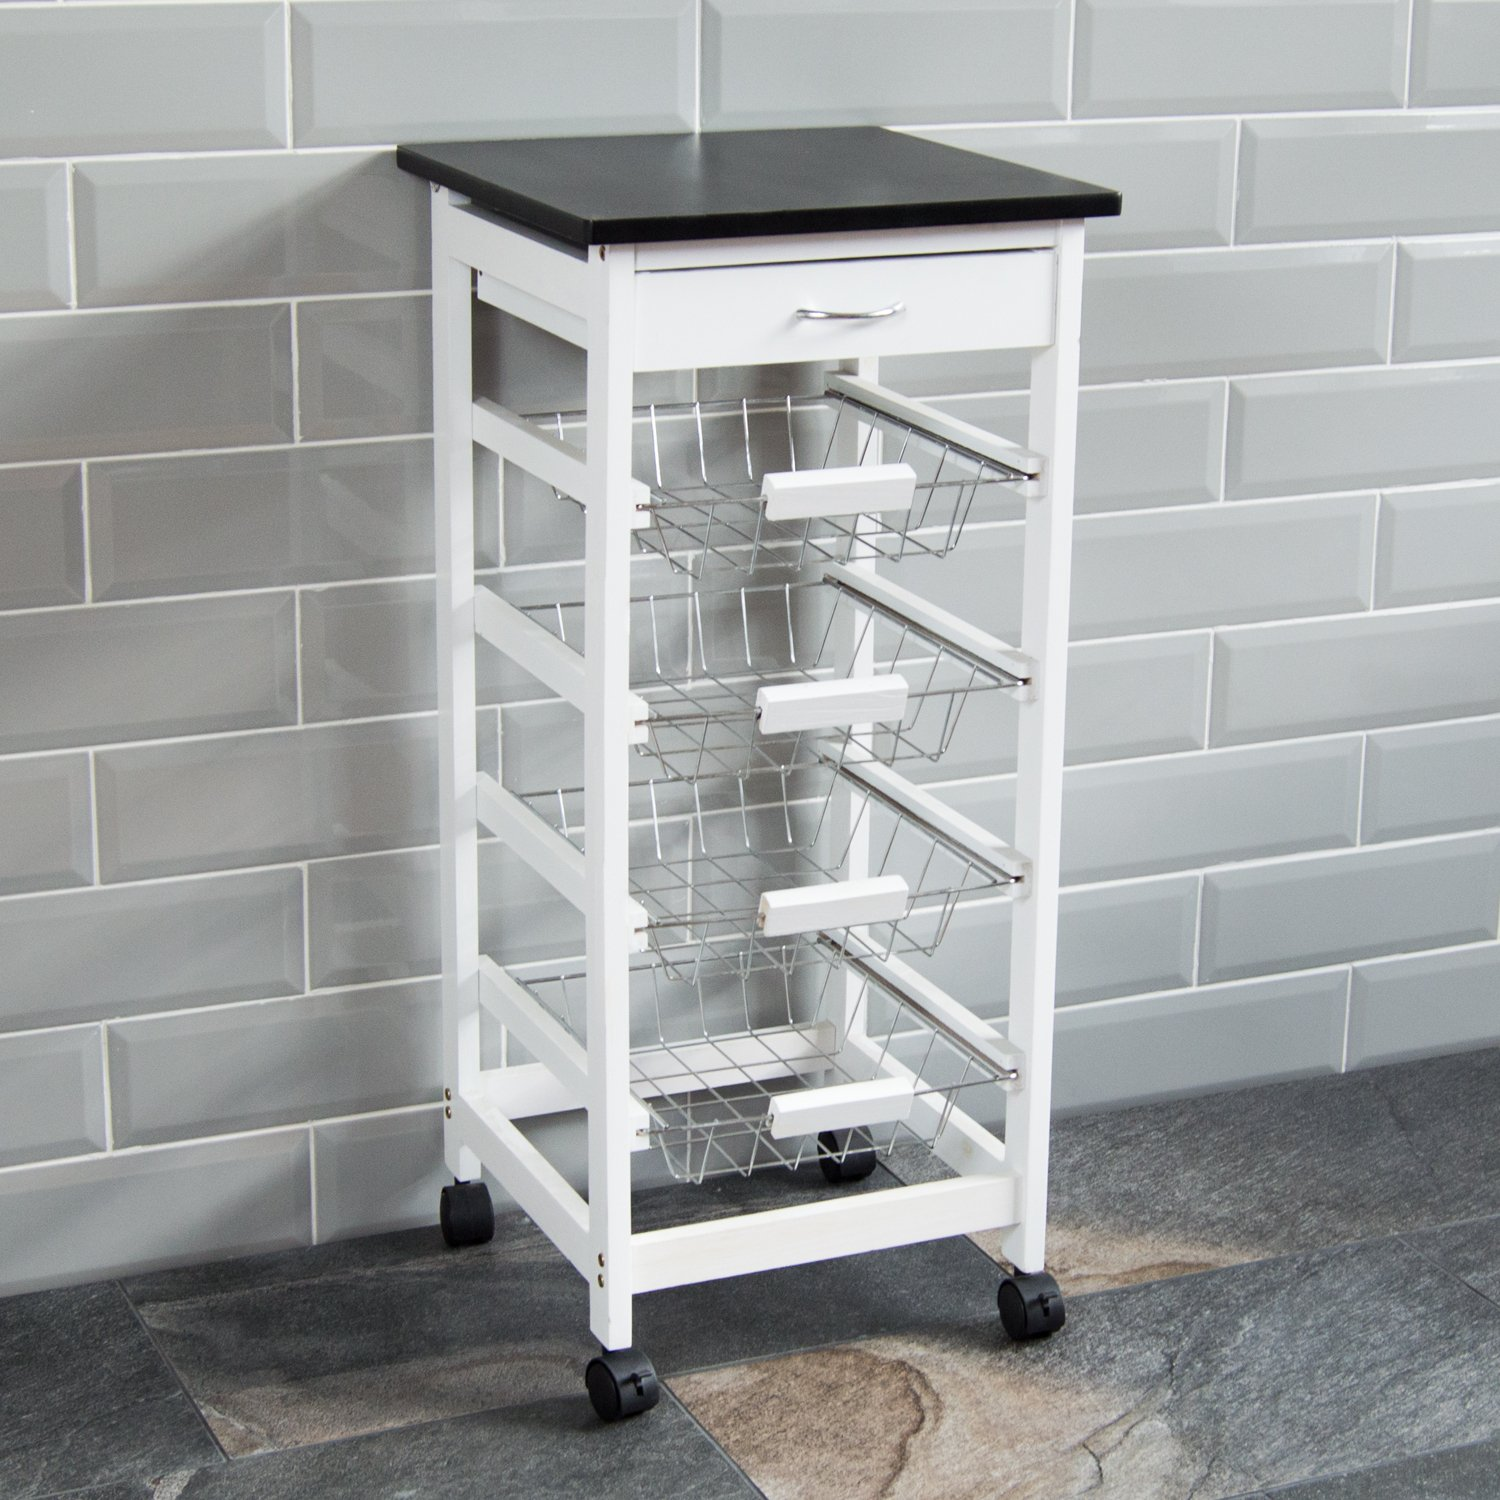 Retro Kitchen 4 Tier Space Saving Trolley Tea Cart Food